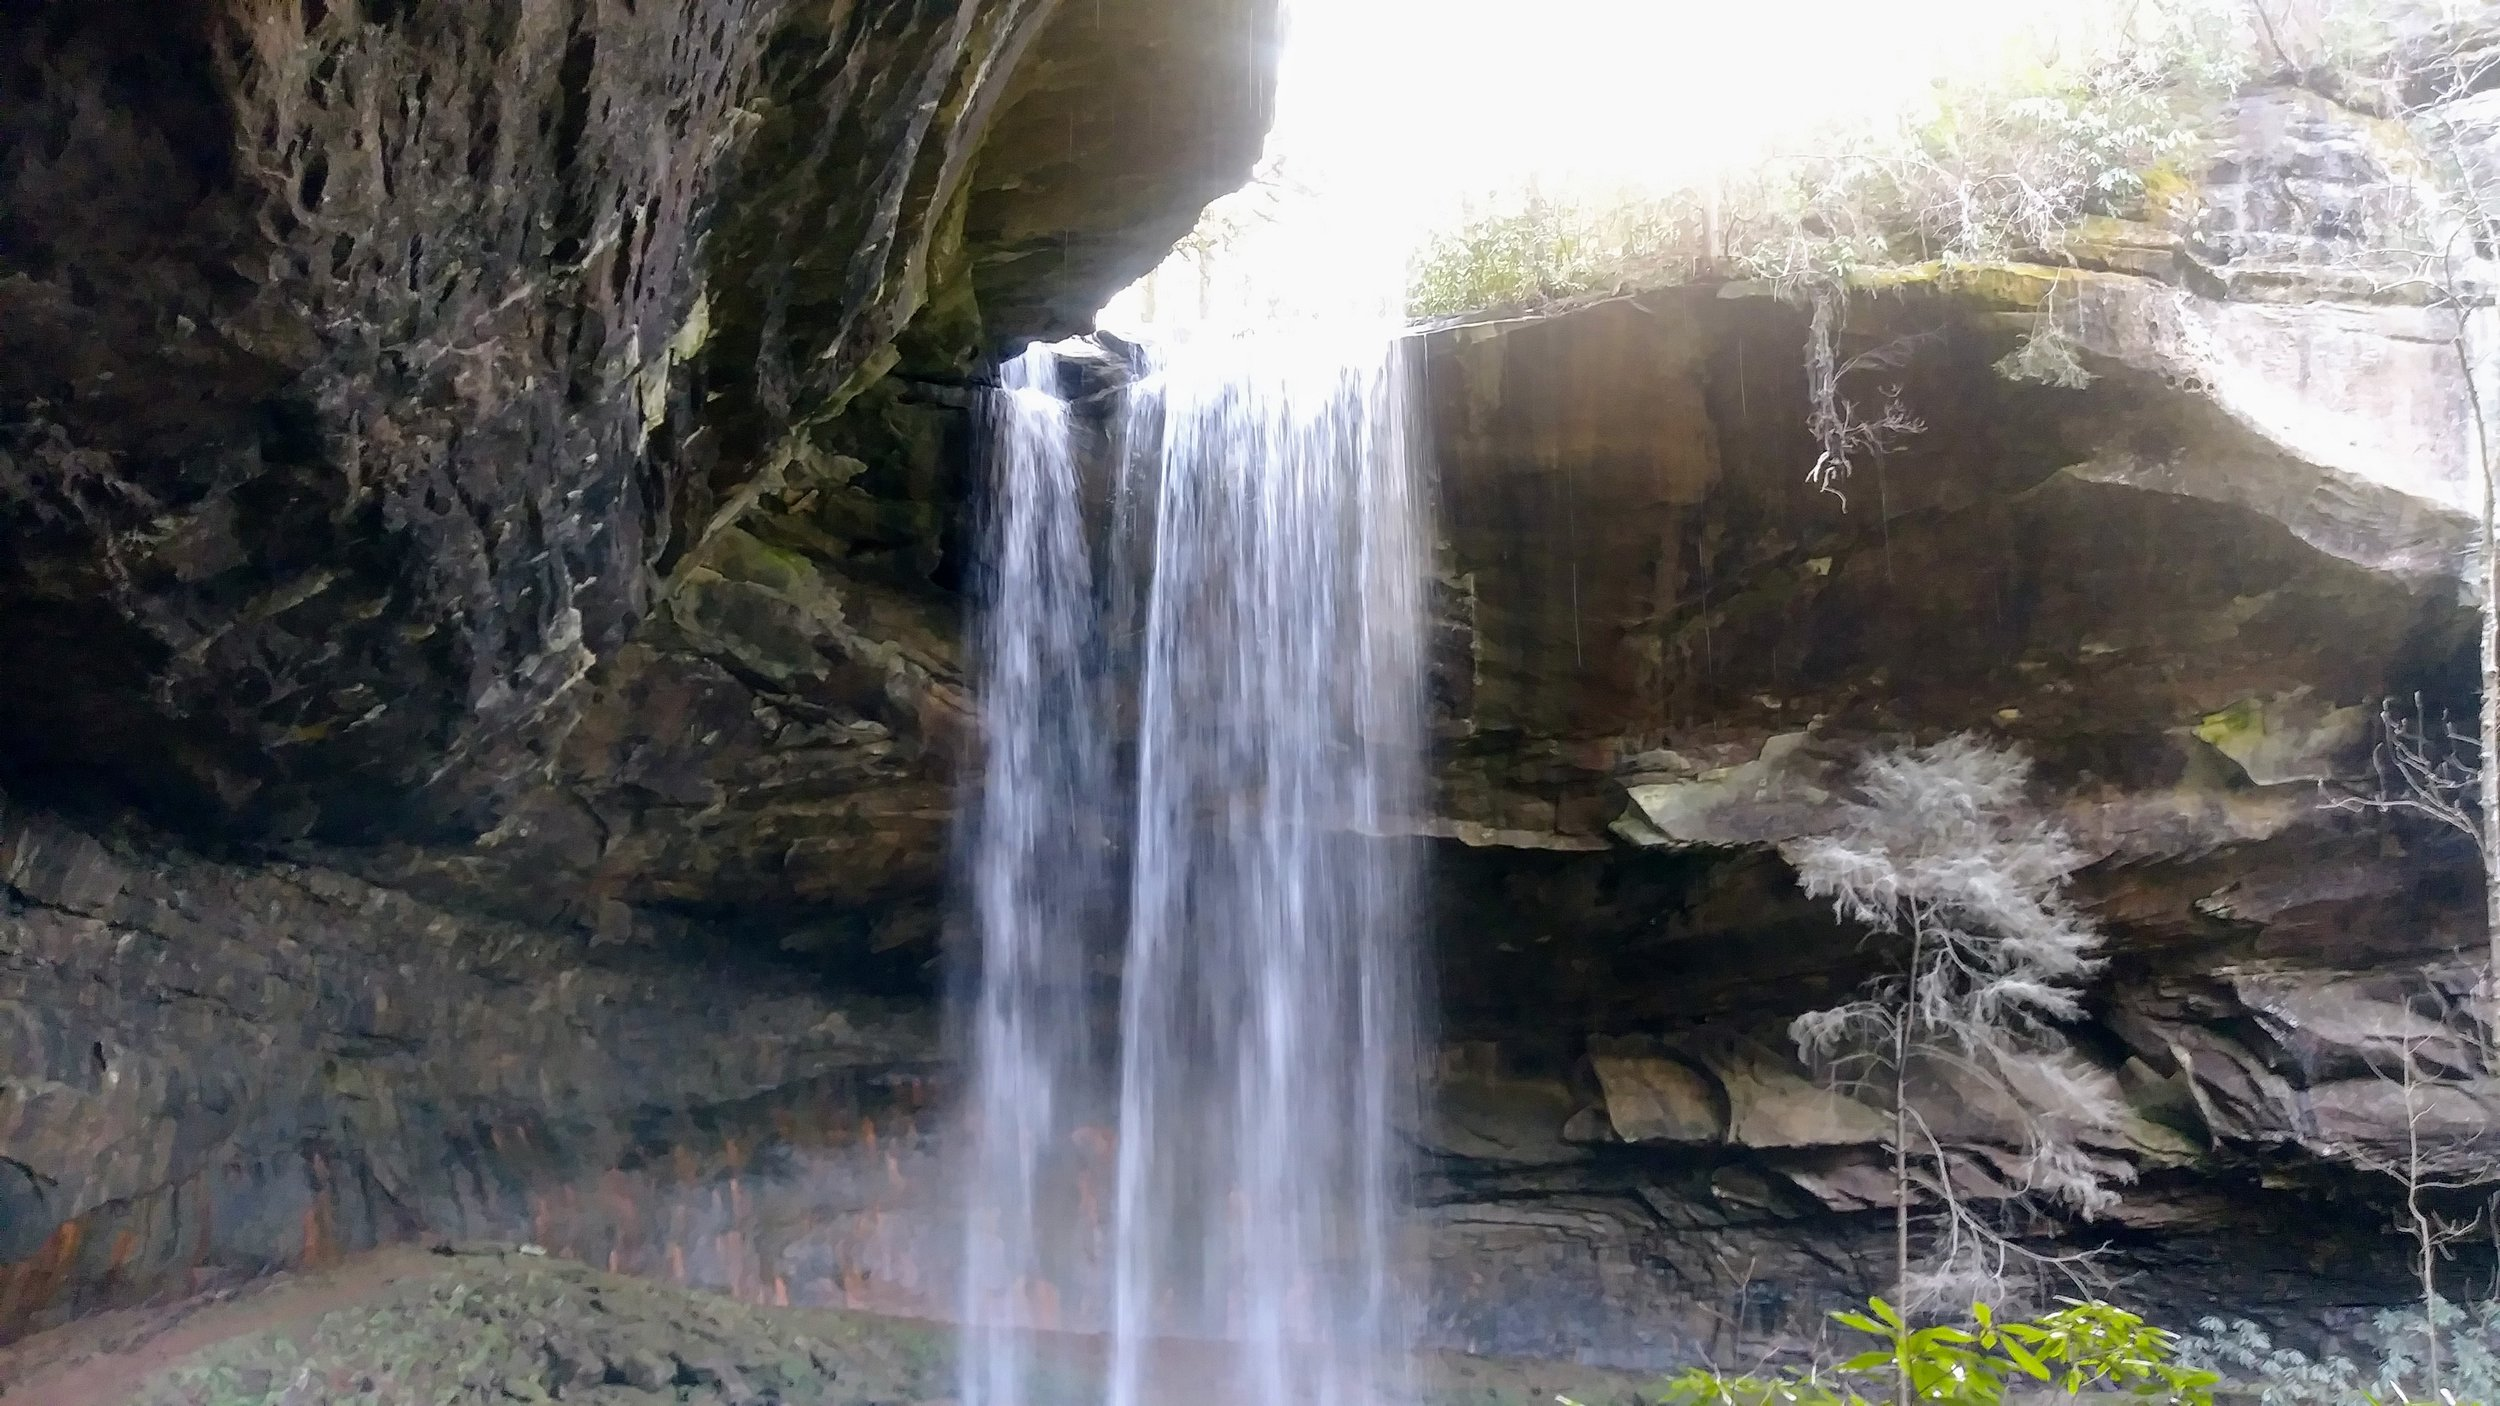 Lick Creek Falls in Big South Fork National River and Recreation Area